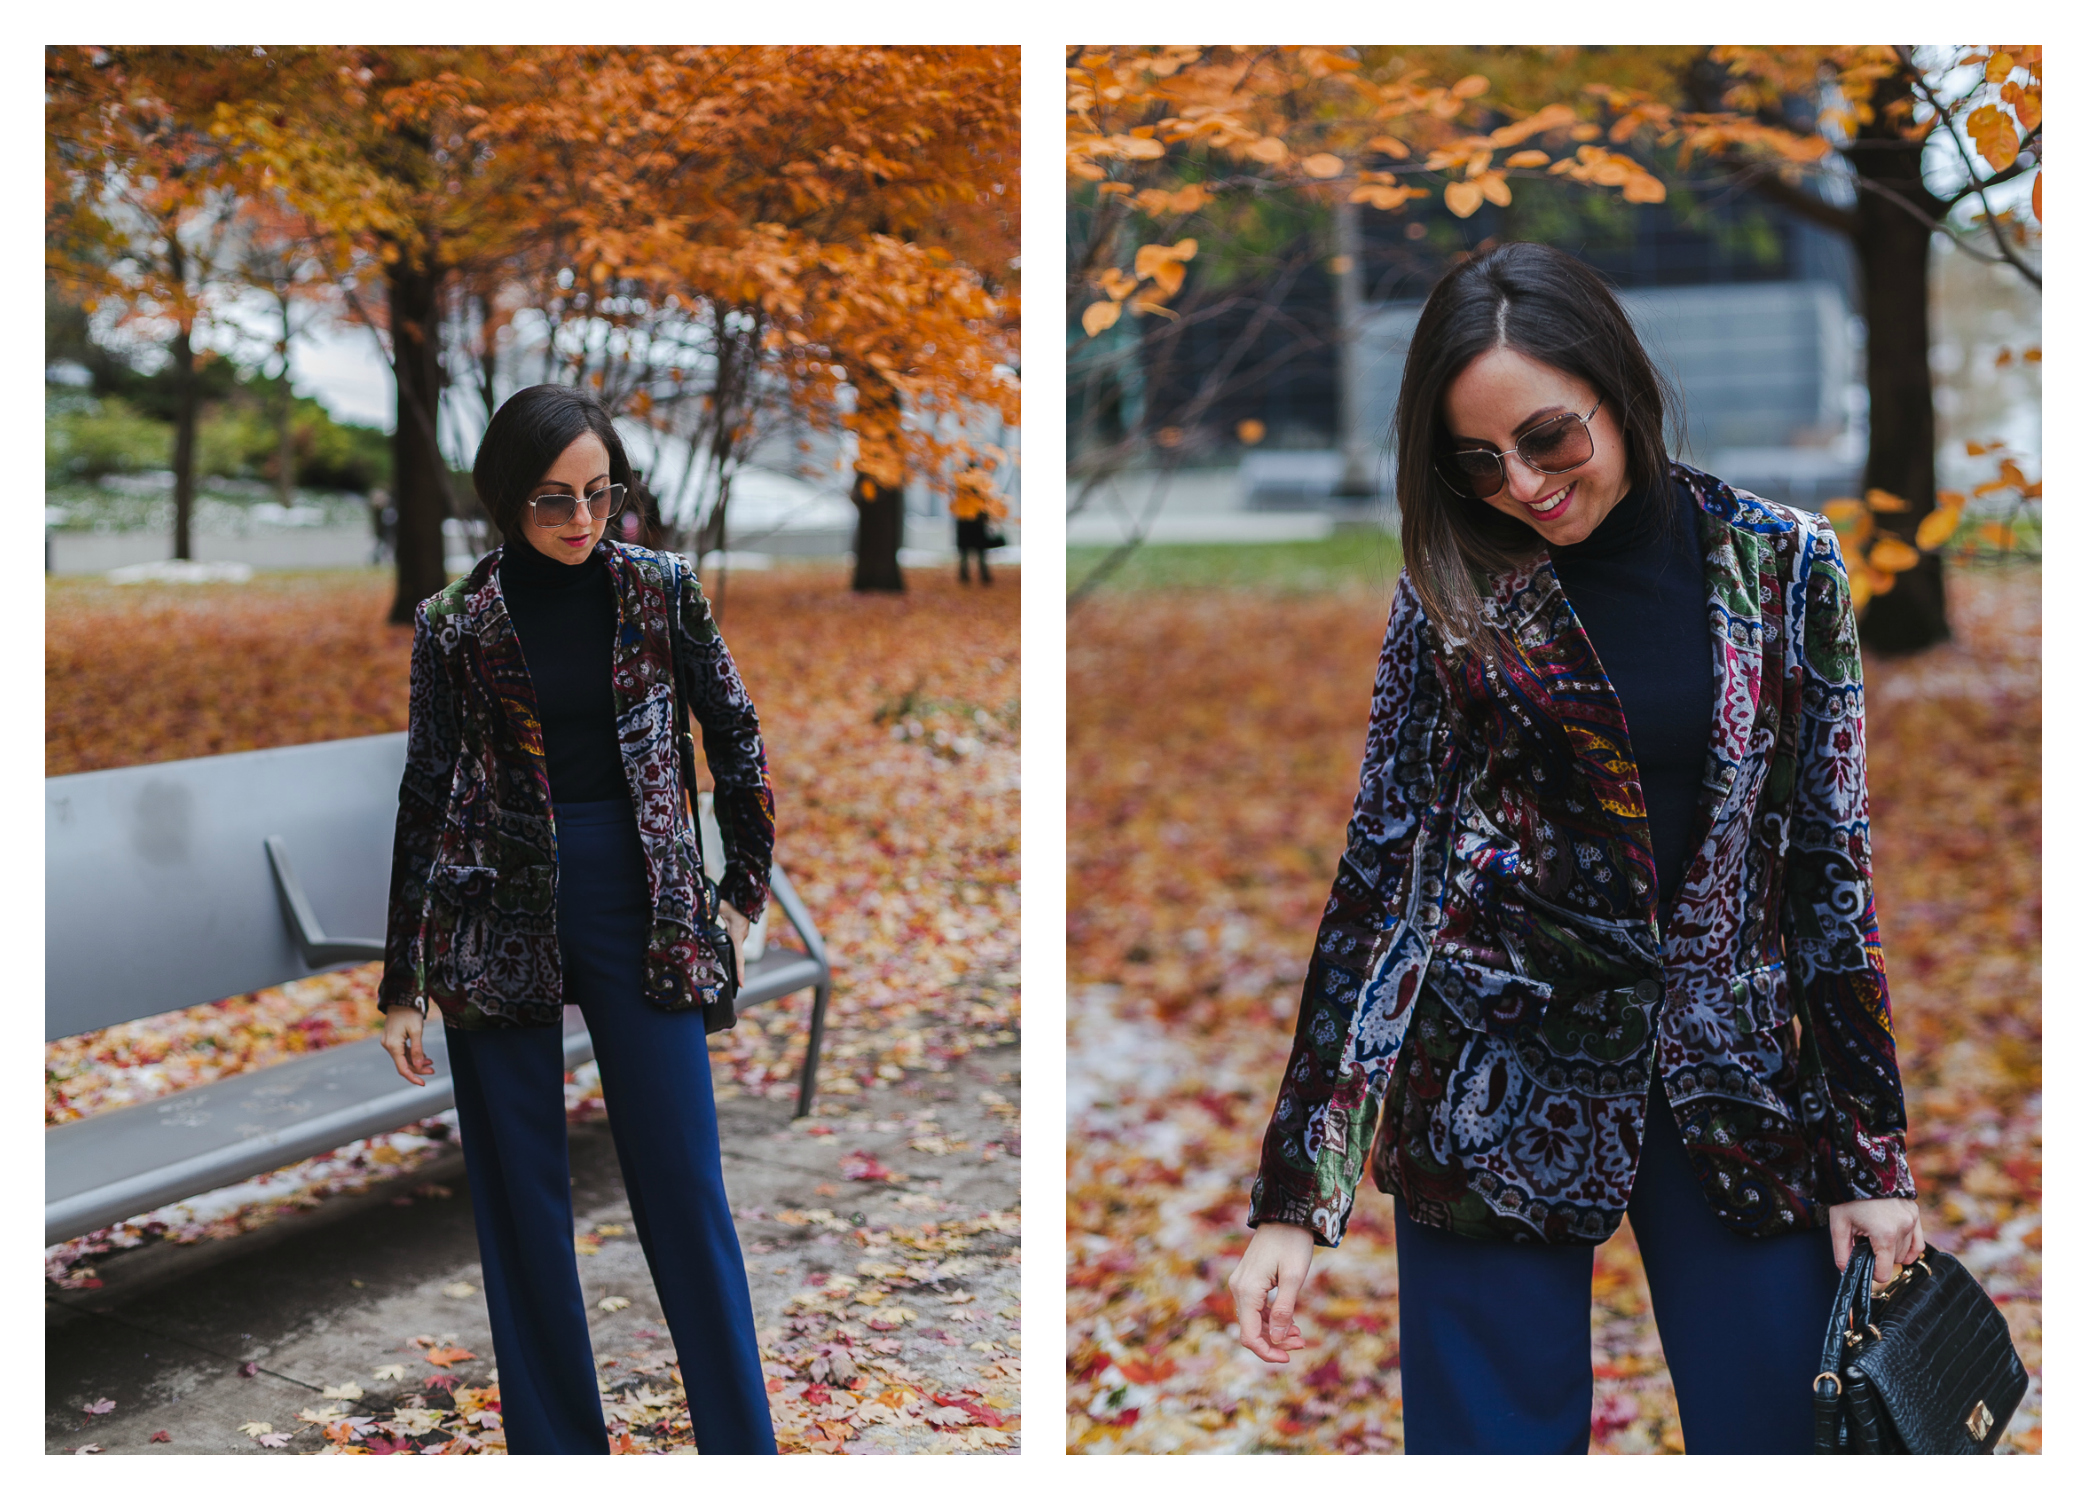 Yana Frigelis of NoMad Luxuries wearinga velvet paisley blazer, high-waisted navy pants for Thanksgiving with a 70's vibe in Chicago